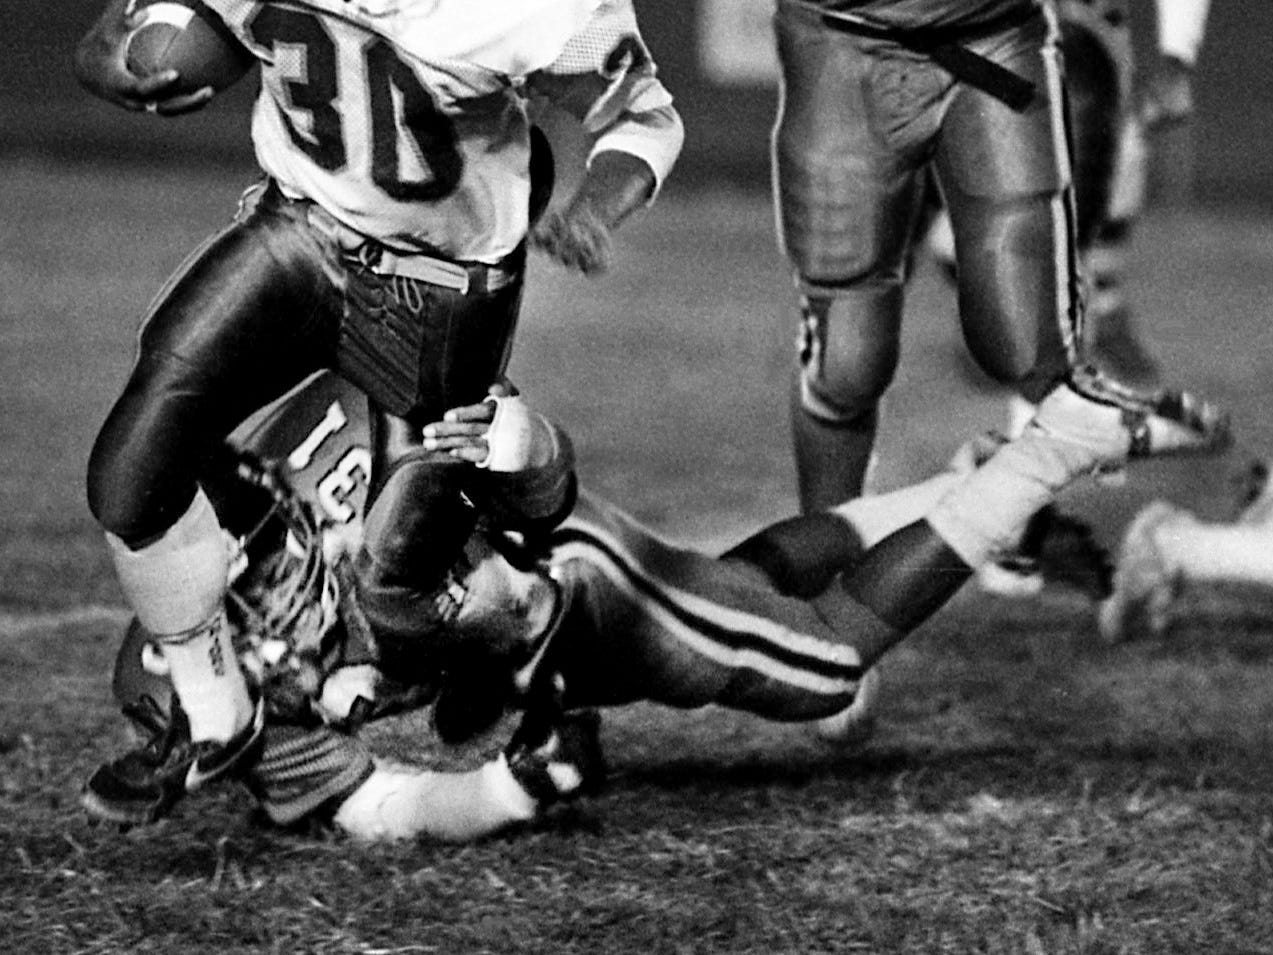 Shelton Quarles, Whites Creek LB 1987-89